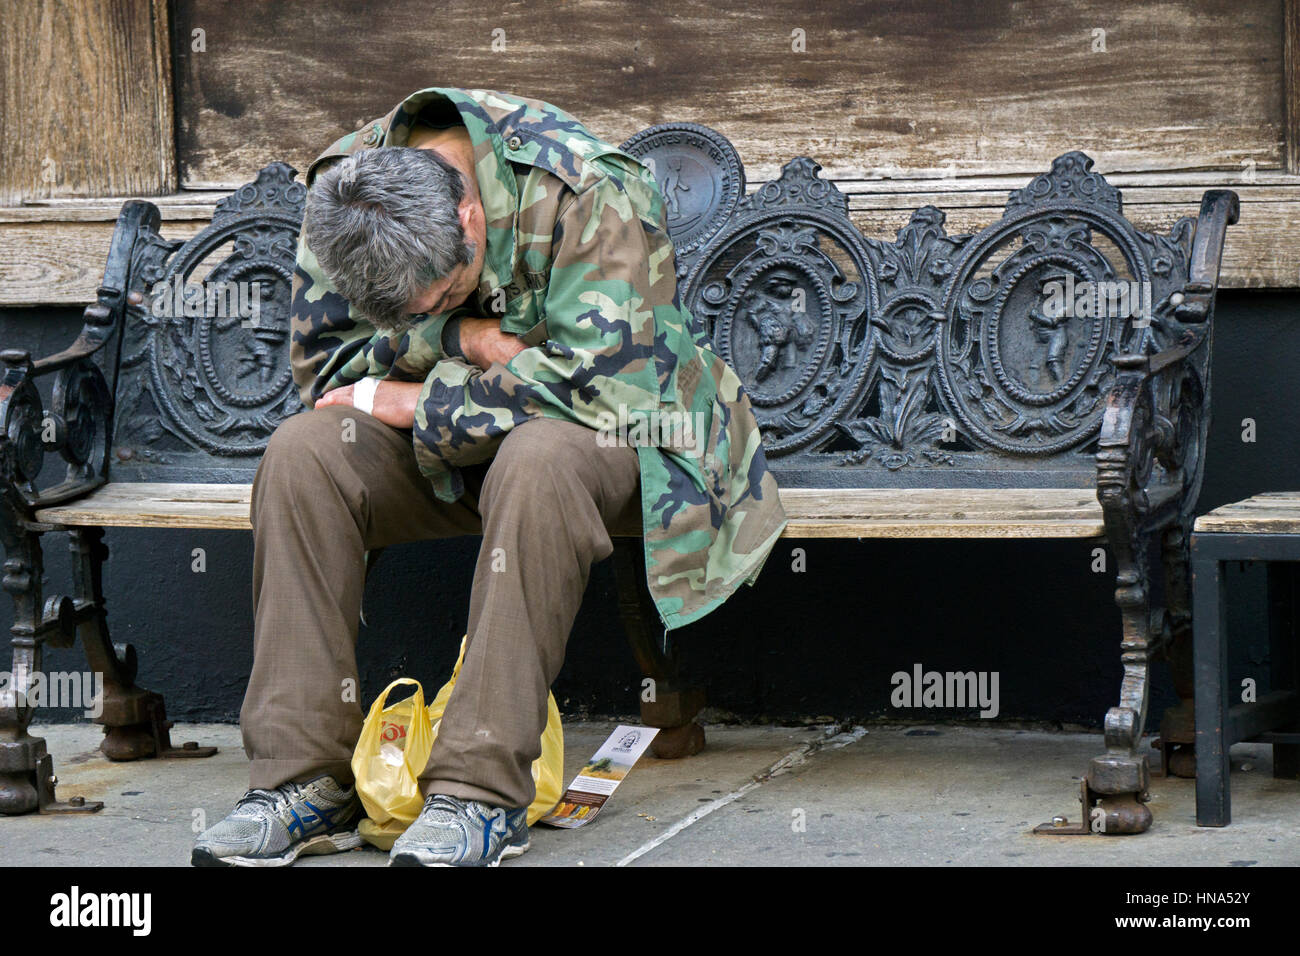 An anonymous  middle aged man - possibly a veteran - sitting with anguished body language on a bench in NOLITA, - Stock Image